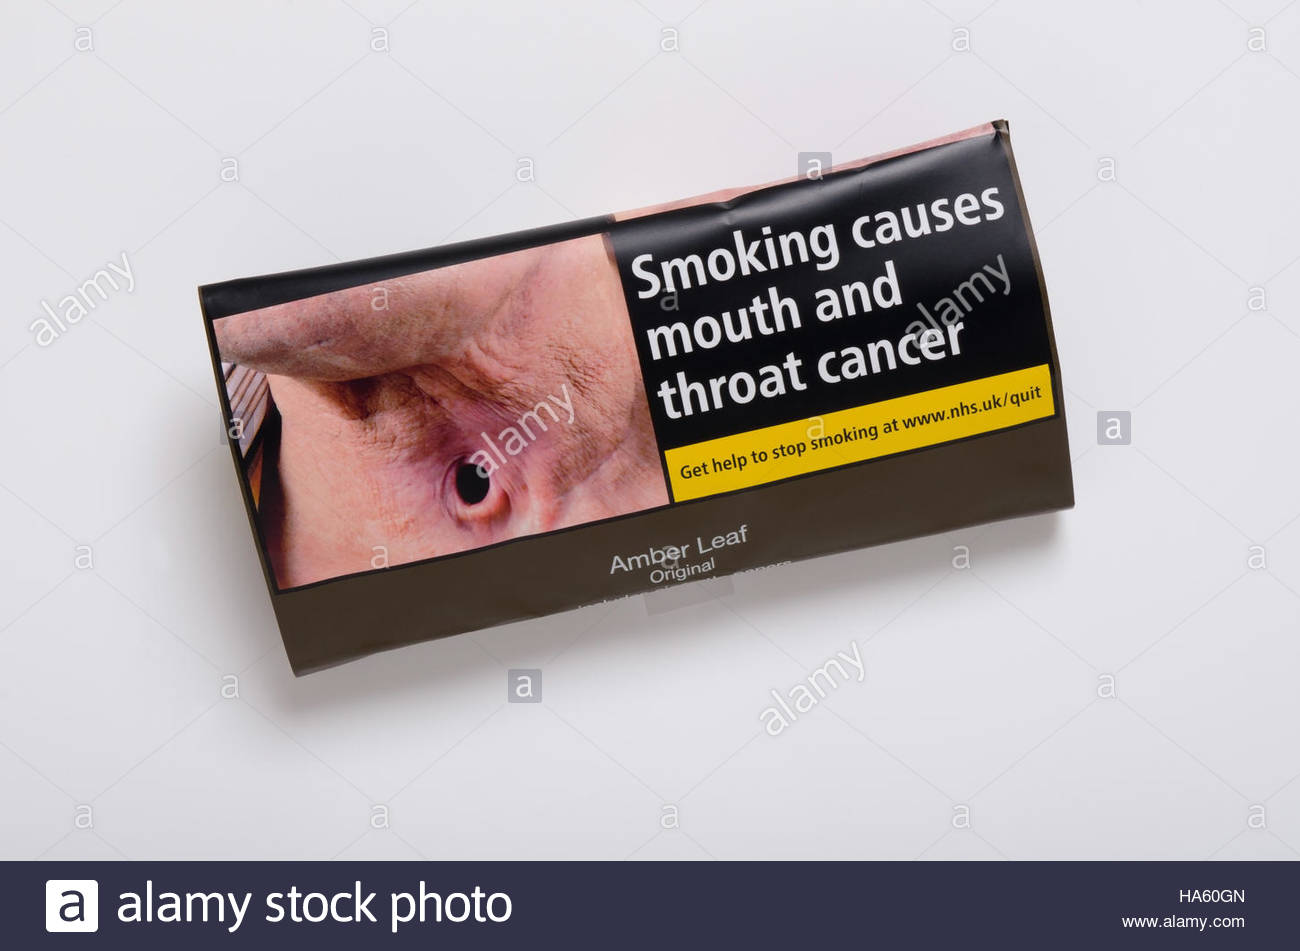 Packet of Amber Leaf smoking tobacco 30g New standardised plain tobacco and cigarettes packaging introduced in the - Stock Image